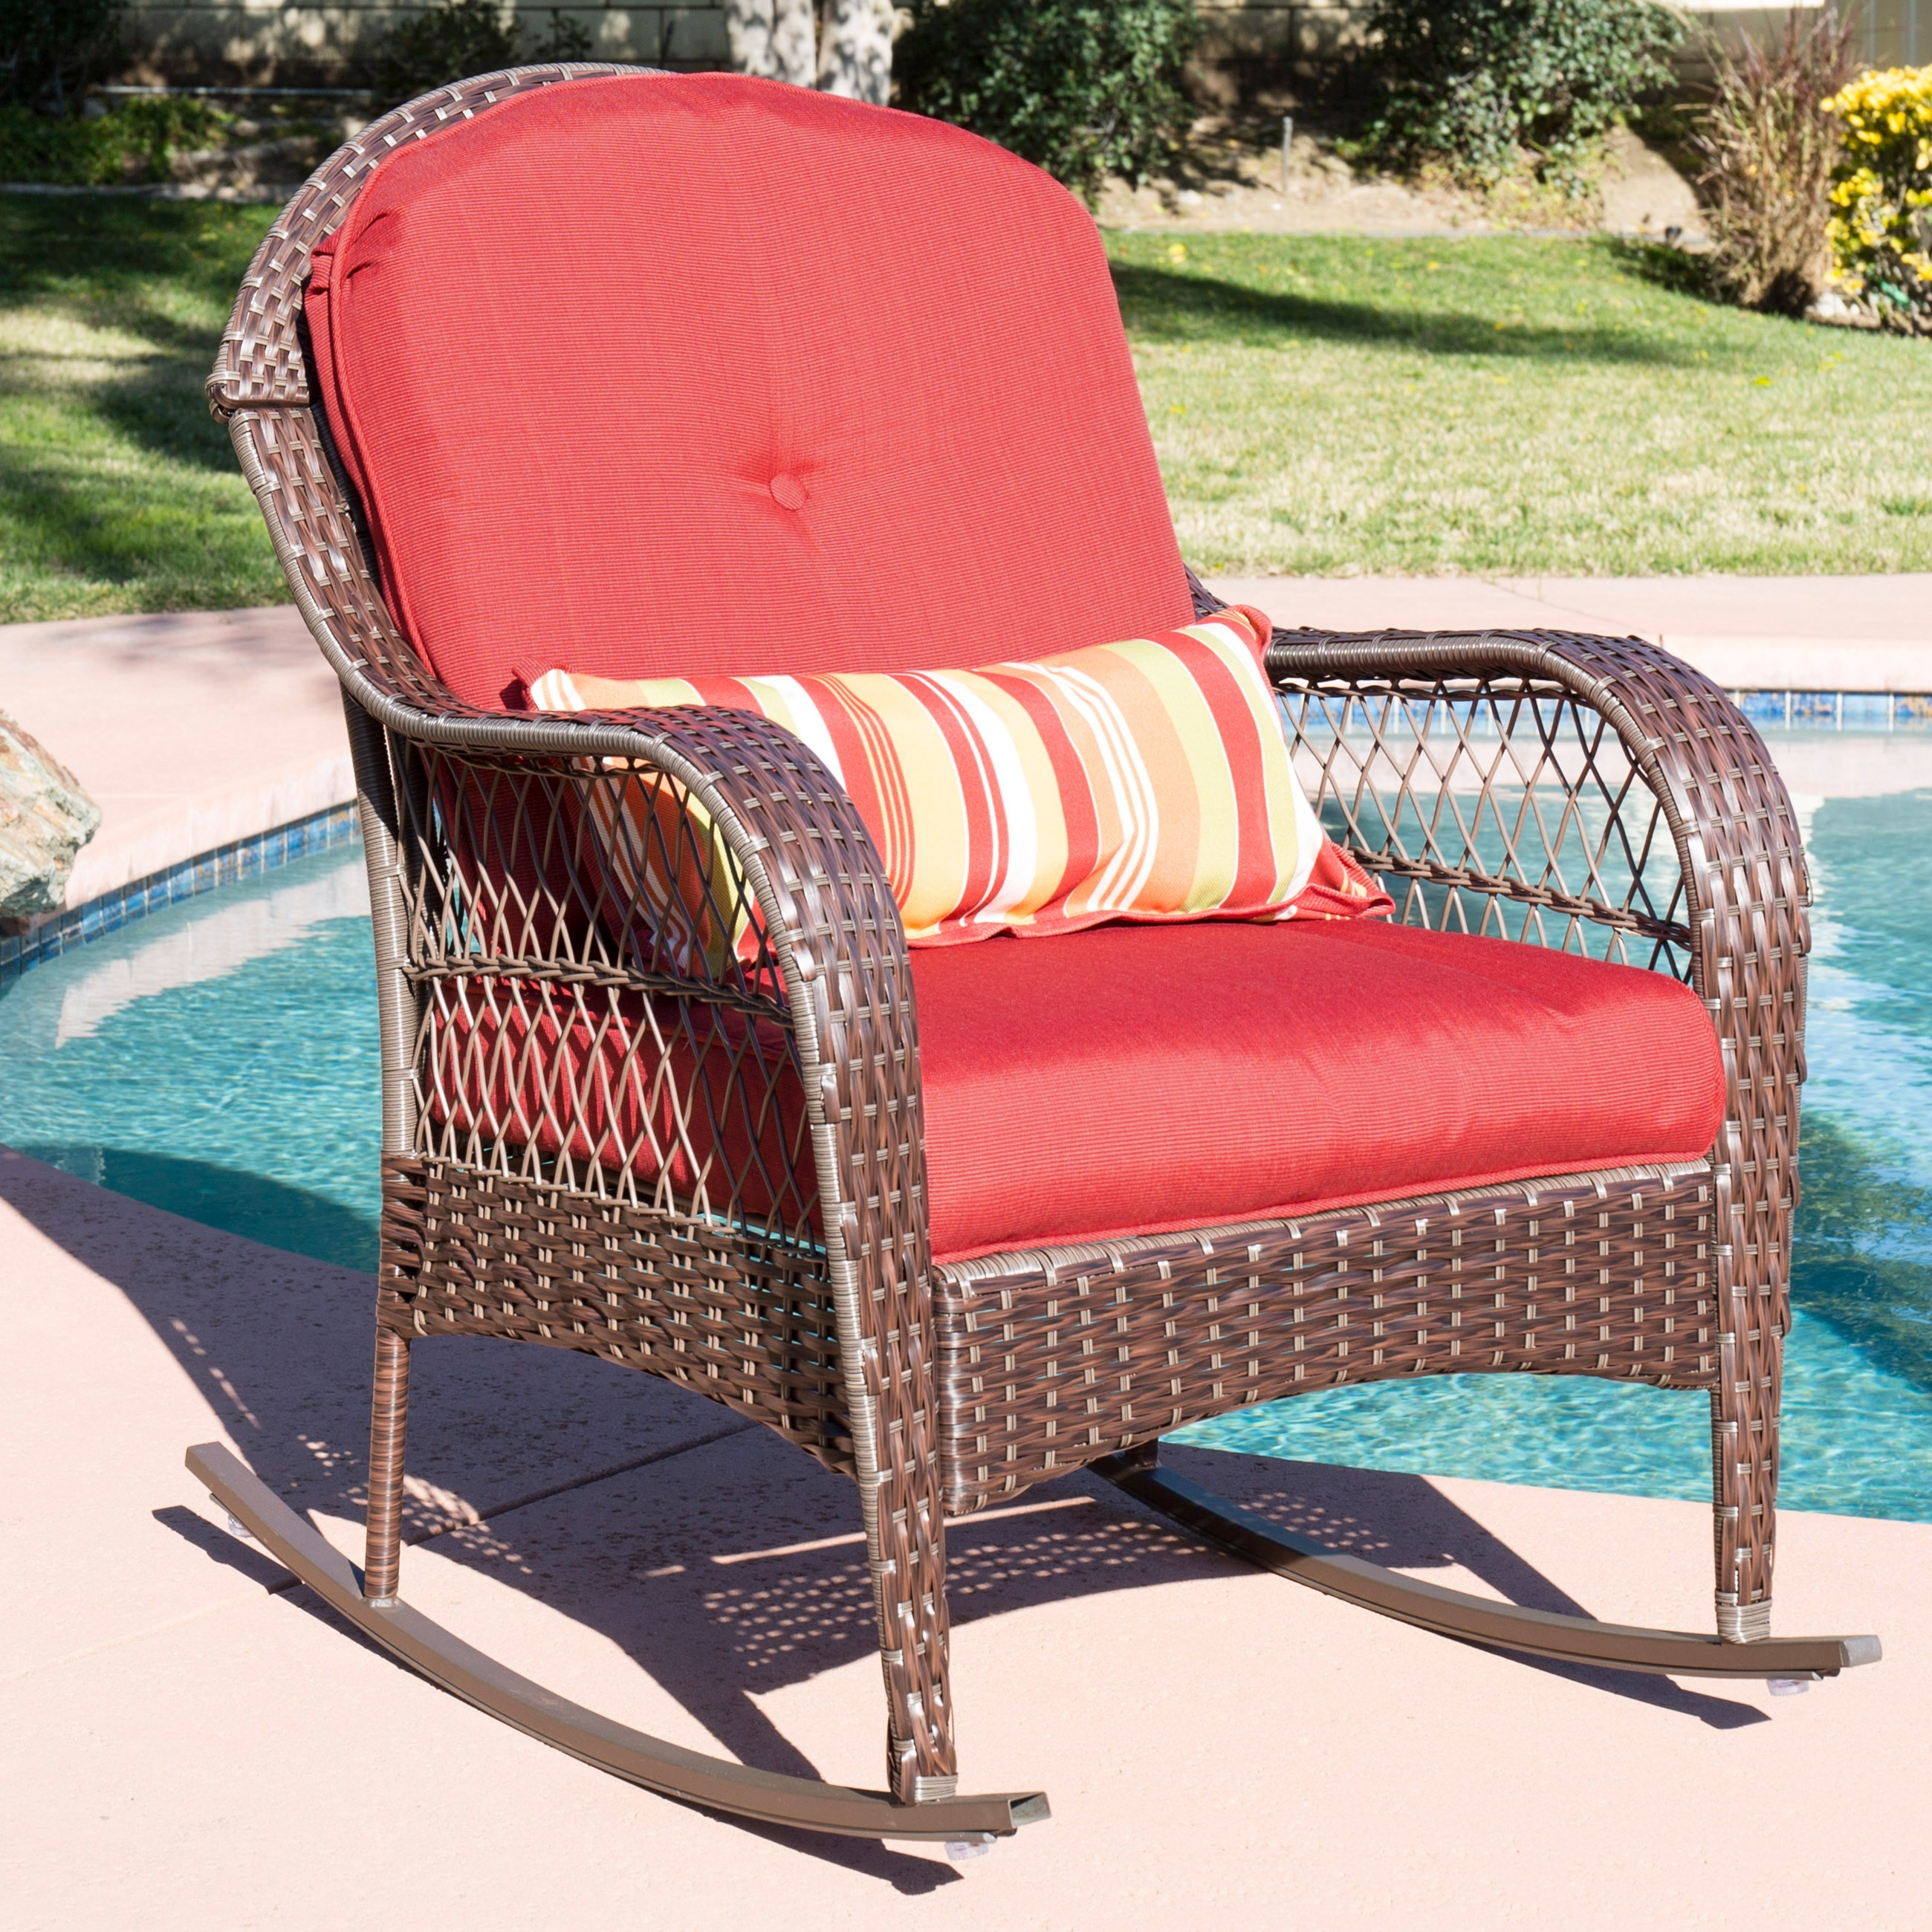 Best And Newest Best Choice Products Wicker Rocking Chair Patio Porch Deck Furniture Pertaining To Used Patio Rocking Chairs (View 2 of 15)